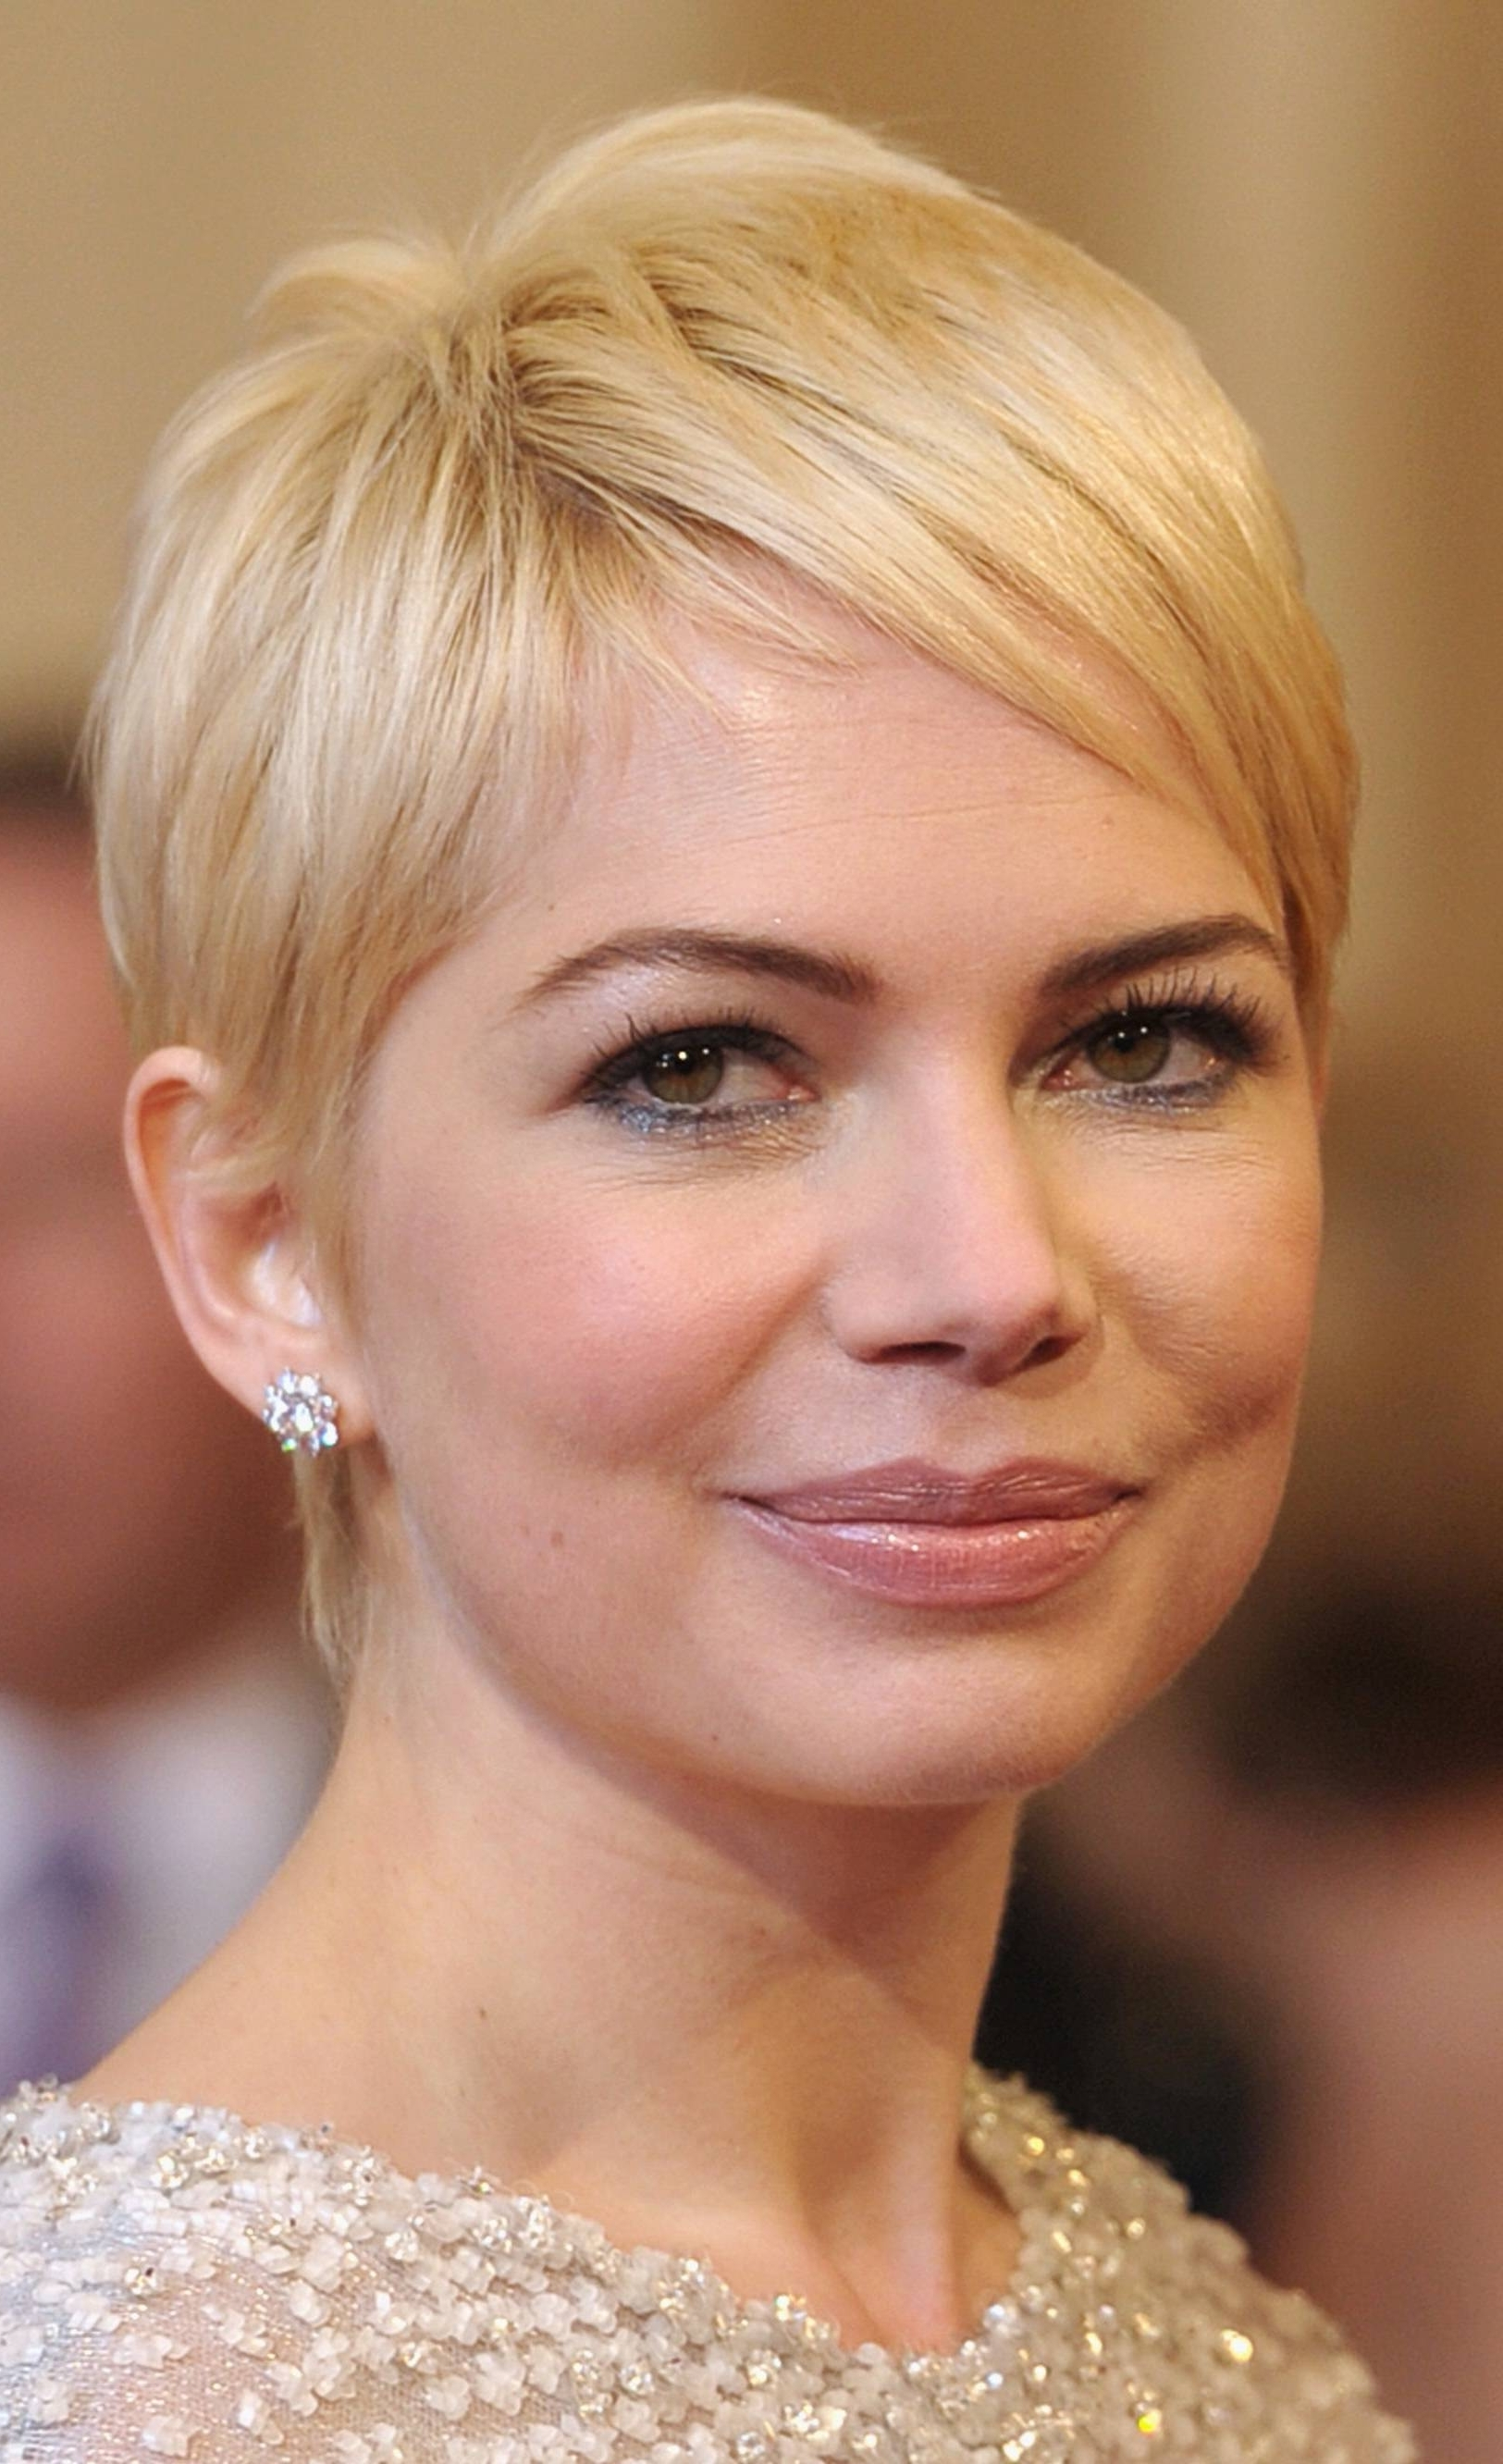 Hairstyles For Fine Thin Hair Over Pixie Hairstyle Pertaining To Most Current Pixie Hairstyles For Fine Thin Hair (View 13 of 15)